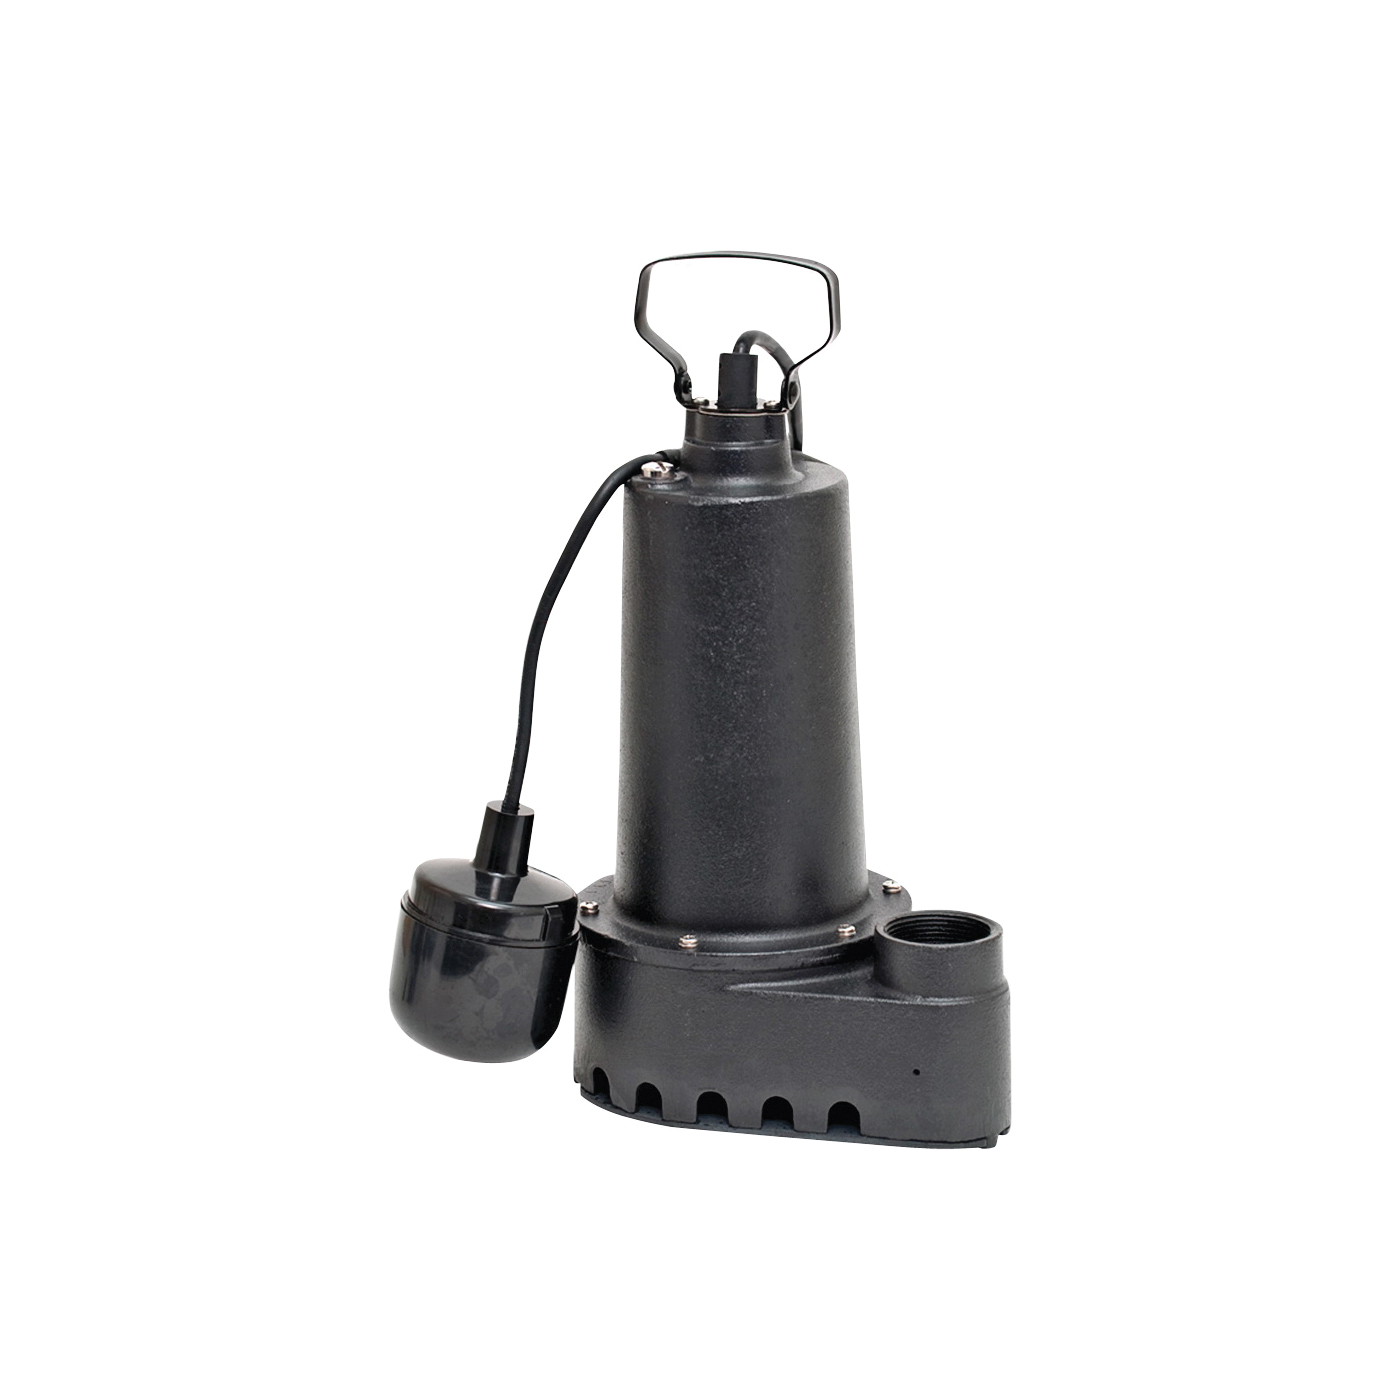 Picture of SUPERIOR PUMP 92501 Sump Pump, 7.6 A, 120 V, 0.5 hp, 1-1/2 in Outlet, 70 gpm, Iron